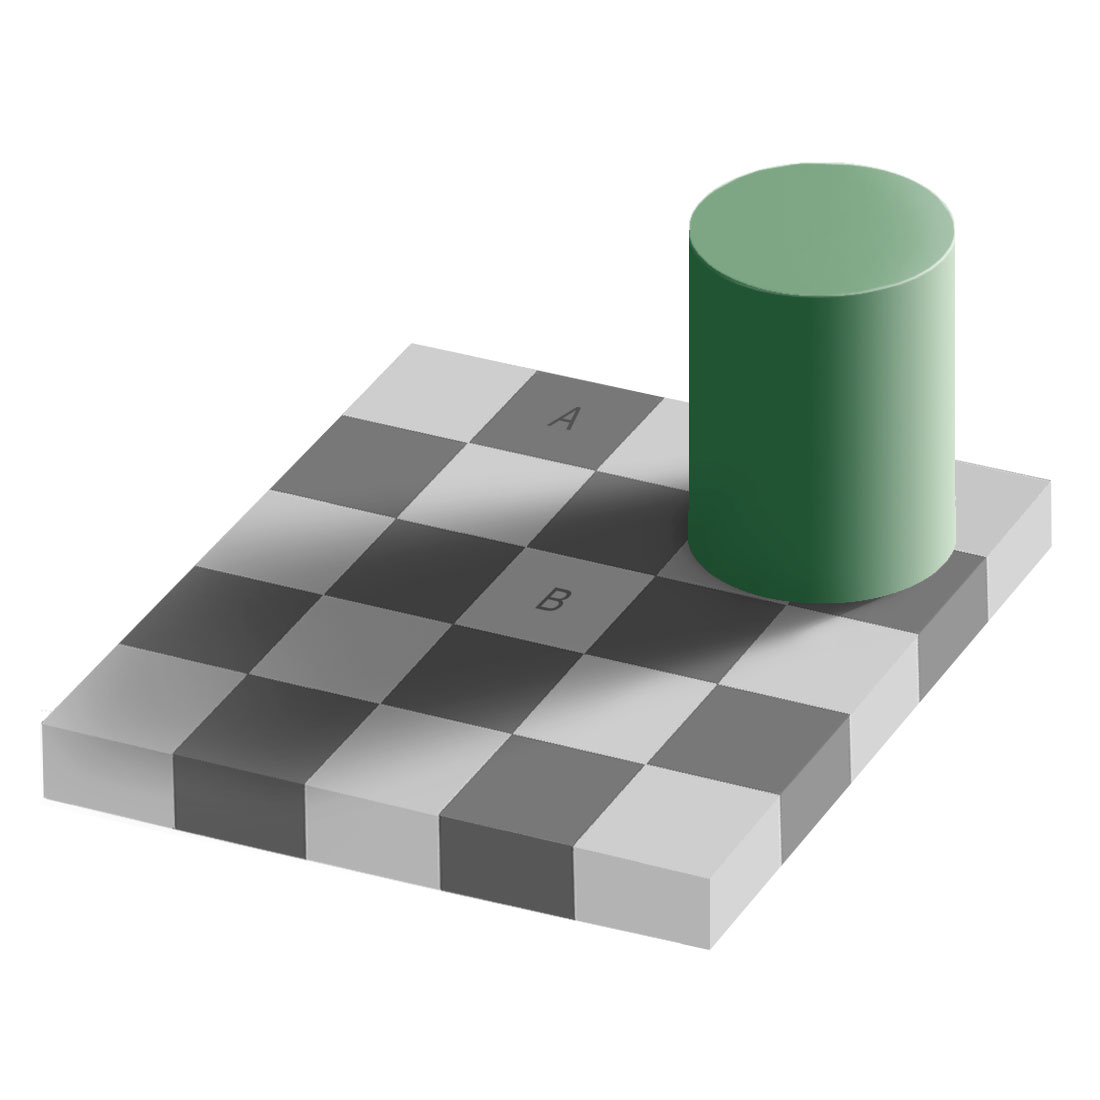 Adelson S Checker Shadow Illusion The